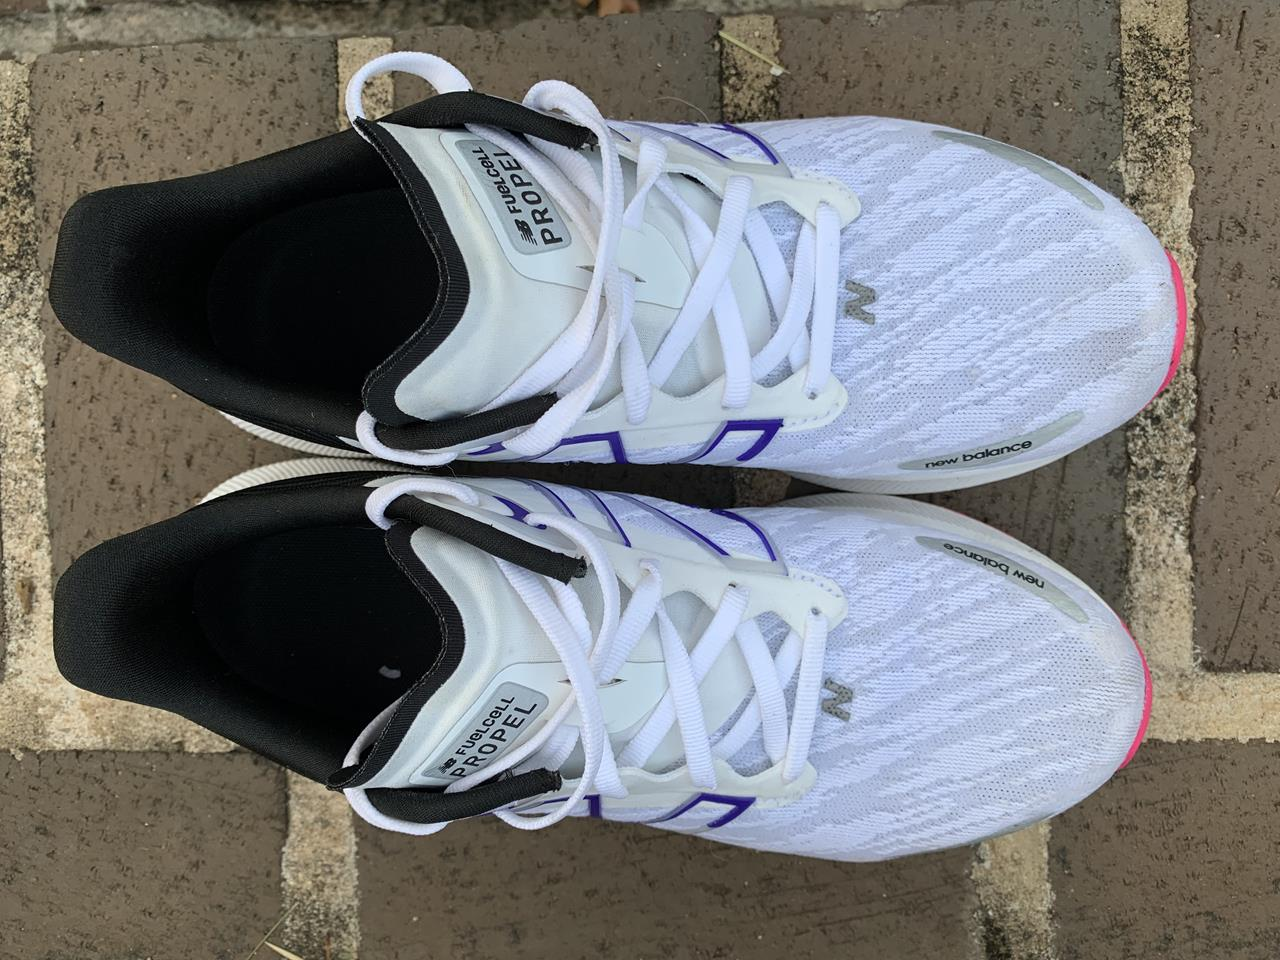 New Balance FuelCell Propel v3 - Top